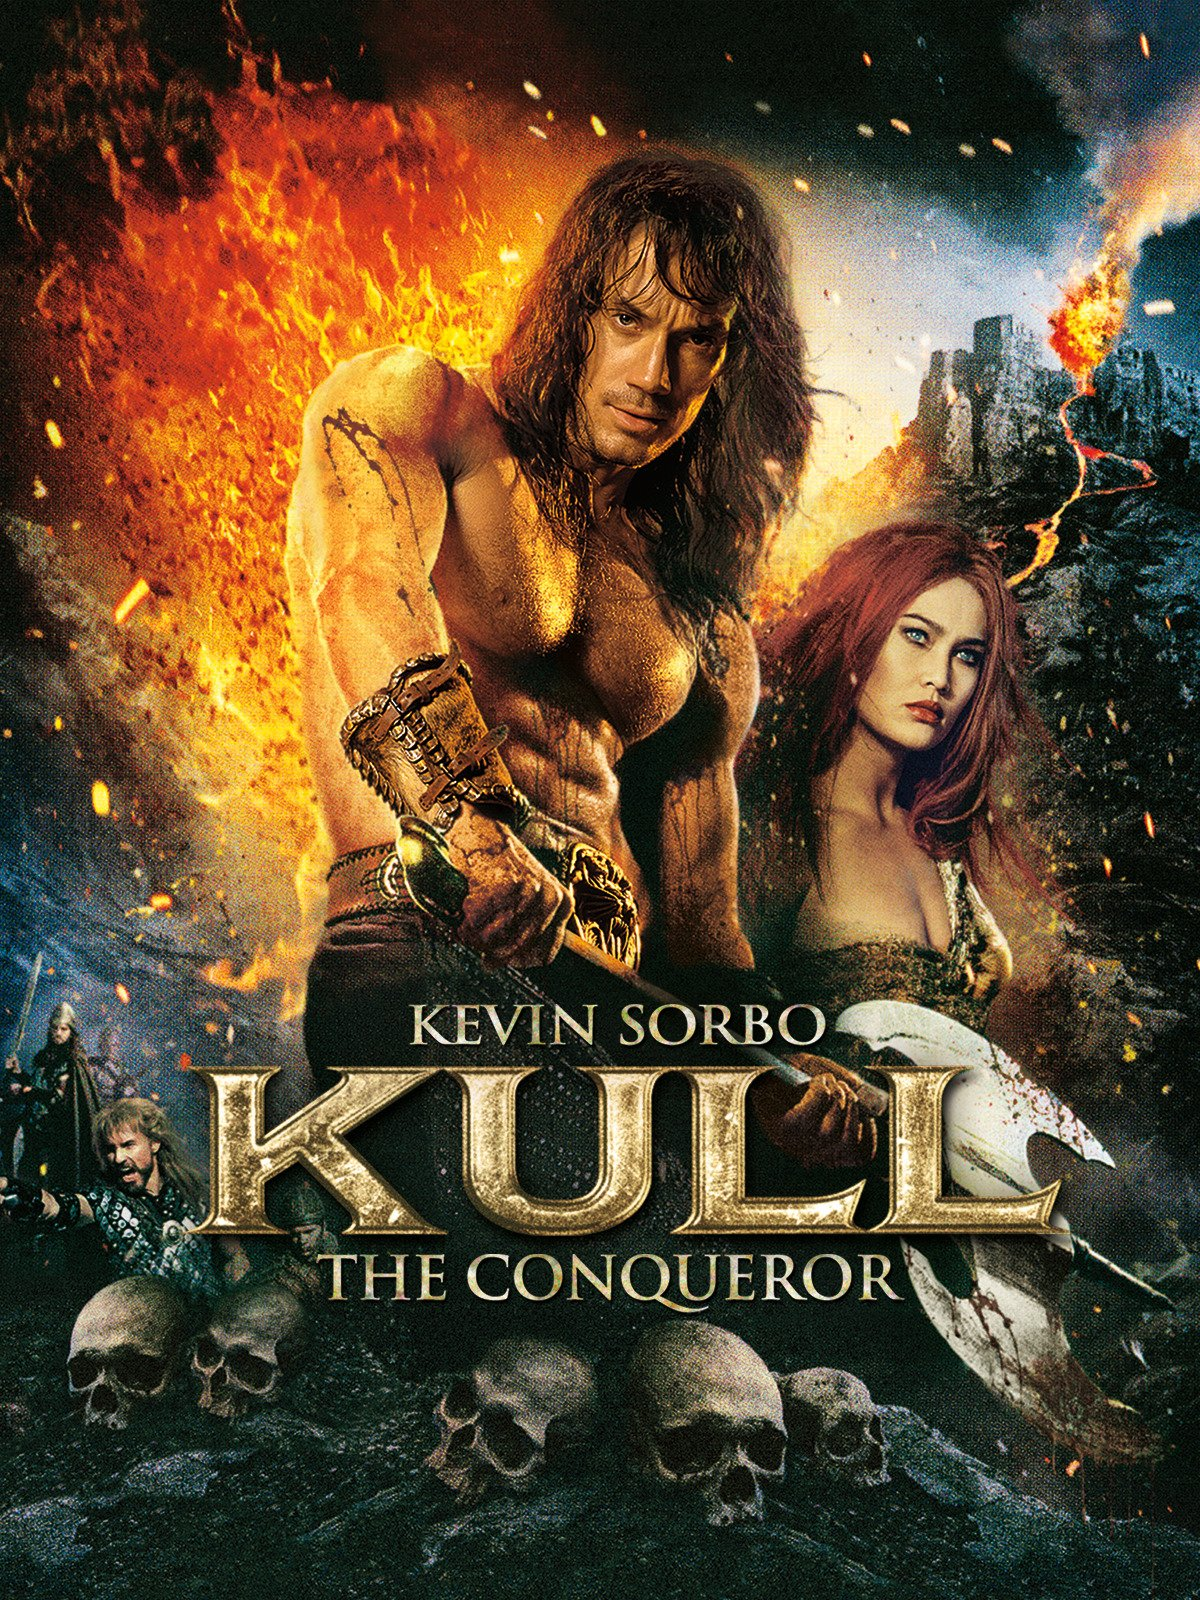 Kull the Conqueror (1997) - Directed by: John NicolellaStarring: Kevin Sorbo, Tia Carrere, Thomas Ian GriffithRated: PG-13 for Fantasy Action Violence and SensualityRunning Time: 1 h 35 mTMM Score: 1.5 stars out of 5STRENGTHS: Interesting PremiseWEAKNESSES: Execution of Everything